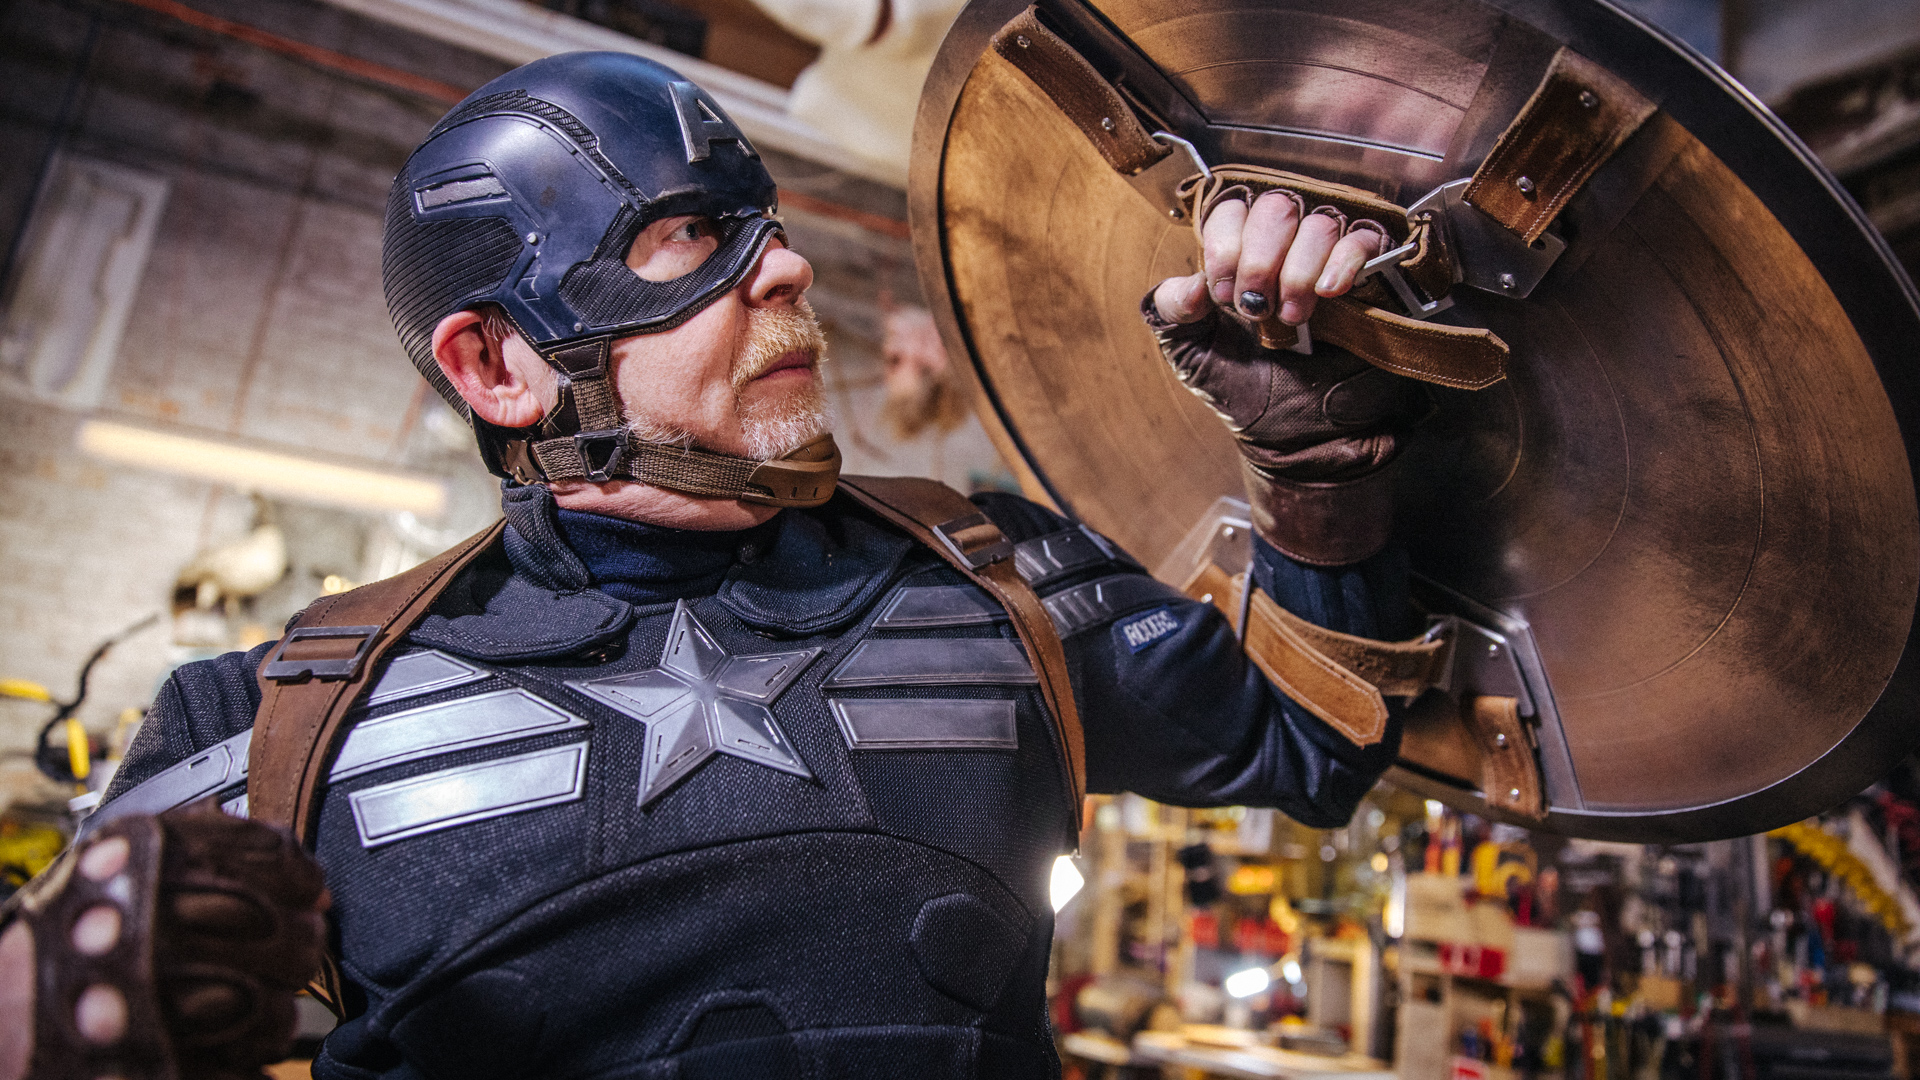 Captain America stealth suit armor cosplay costume